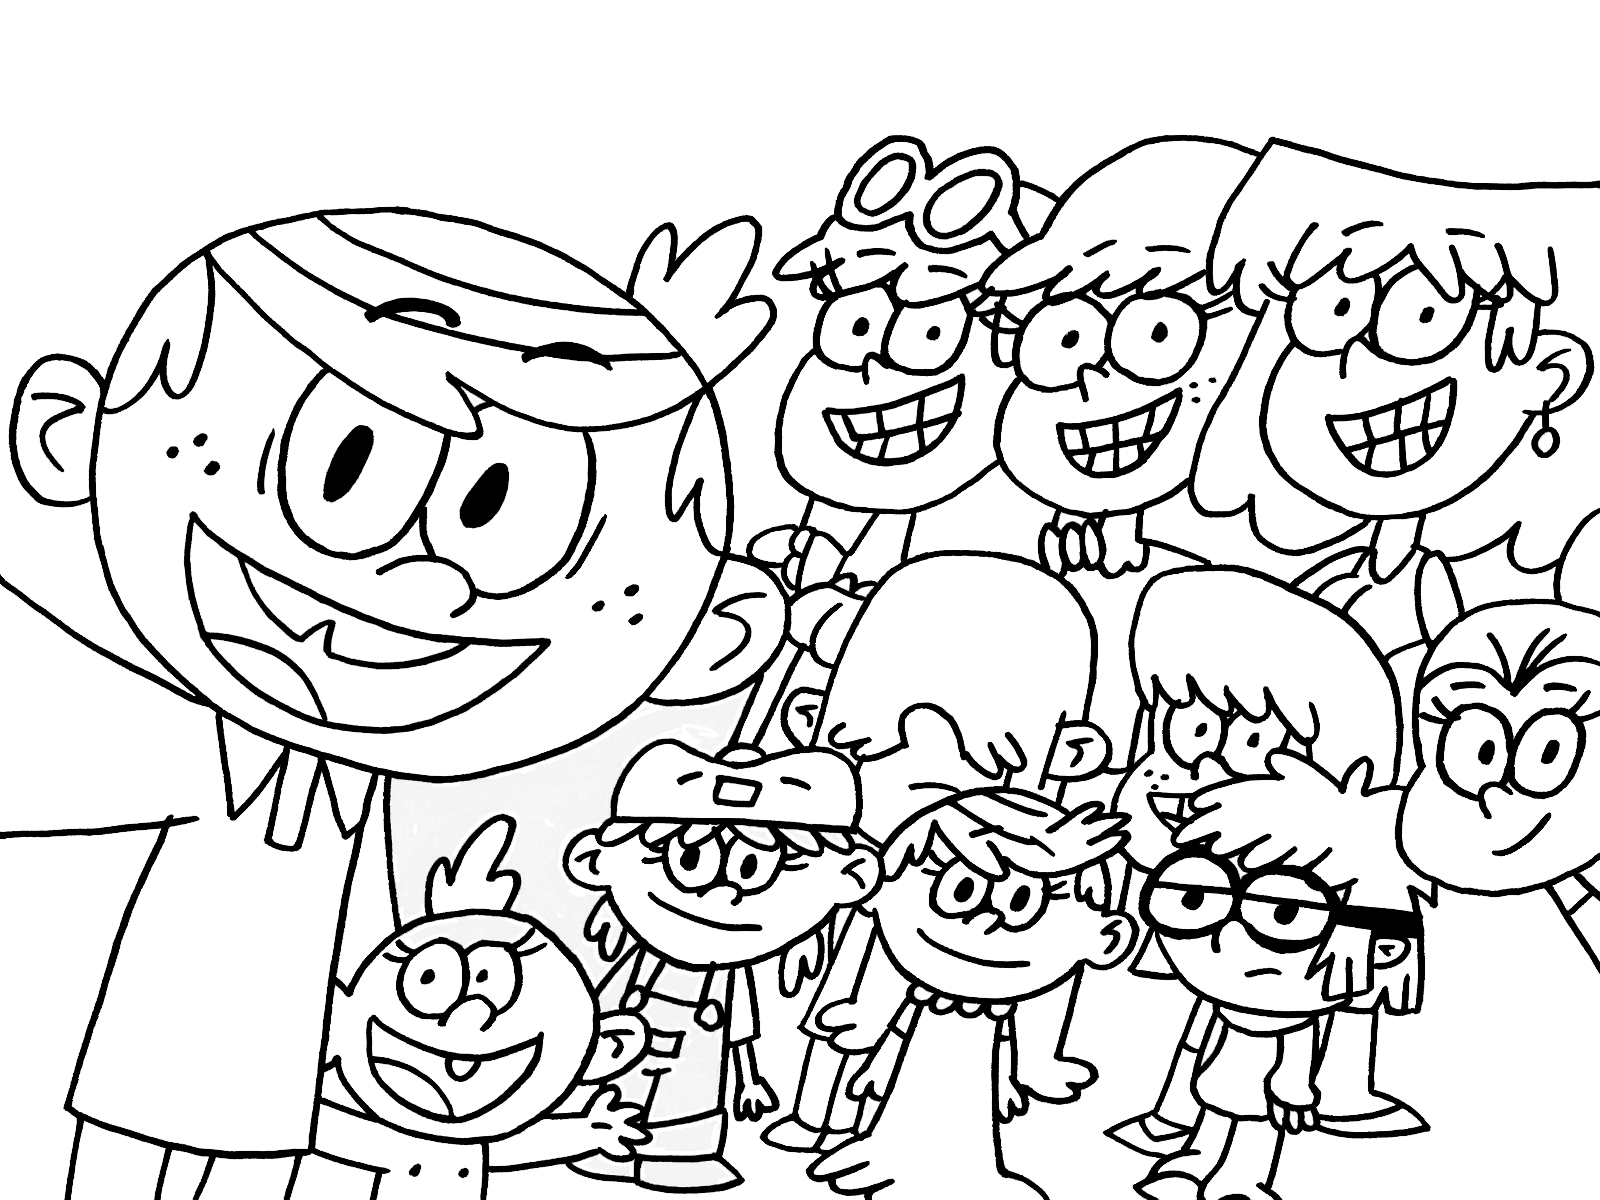 the loud house coloring pages - the loud house coloring pages to download and print for free